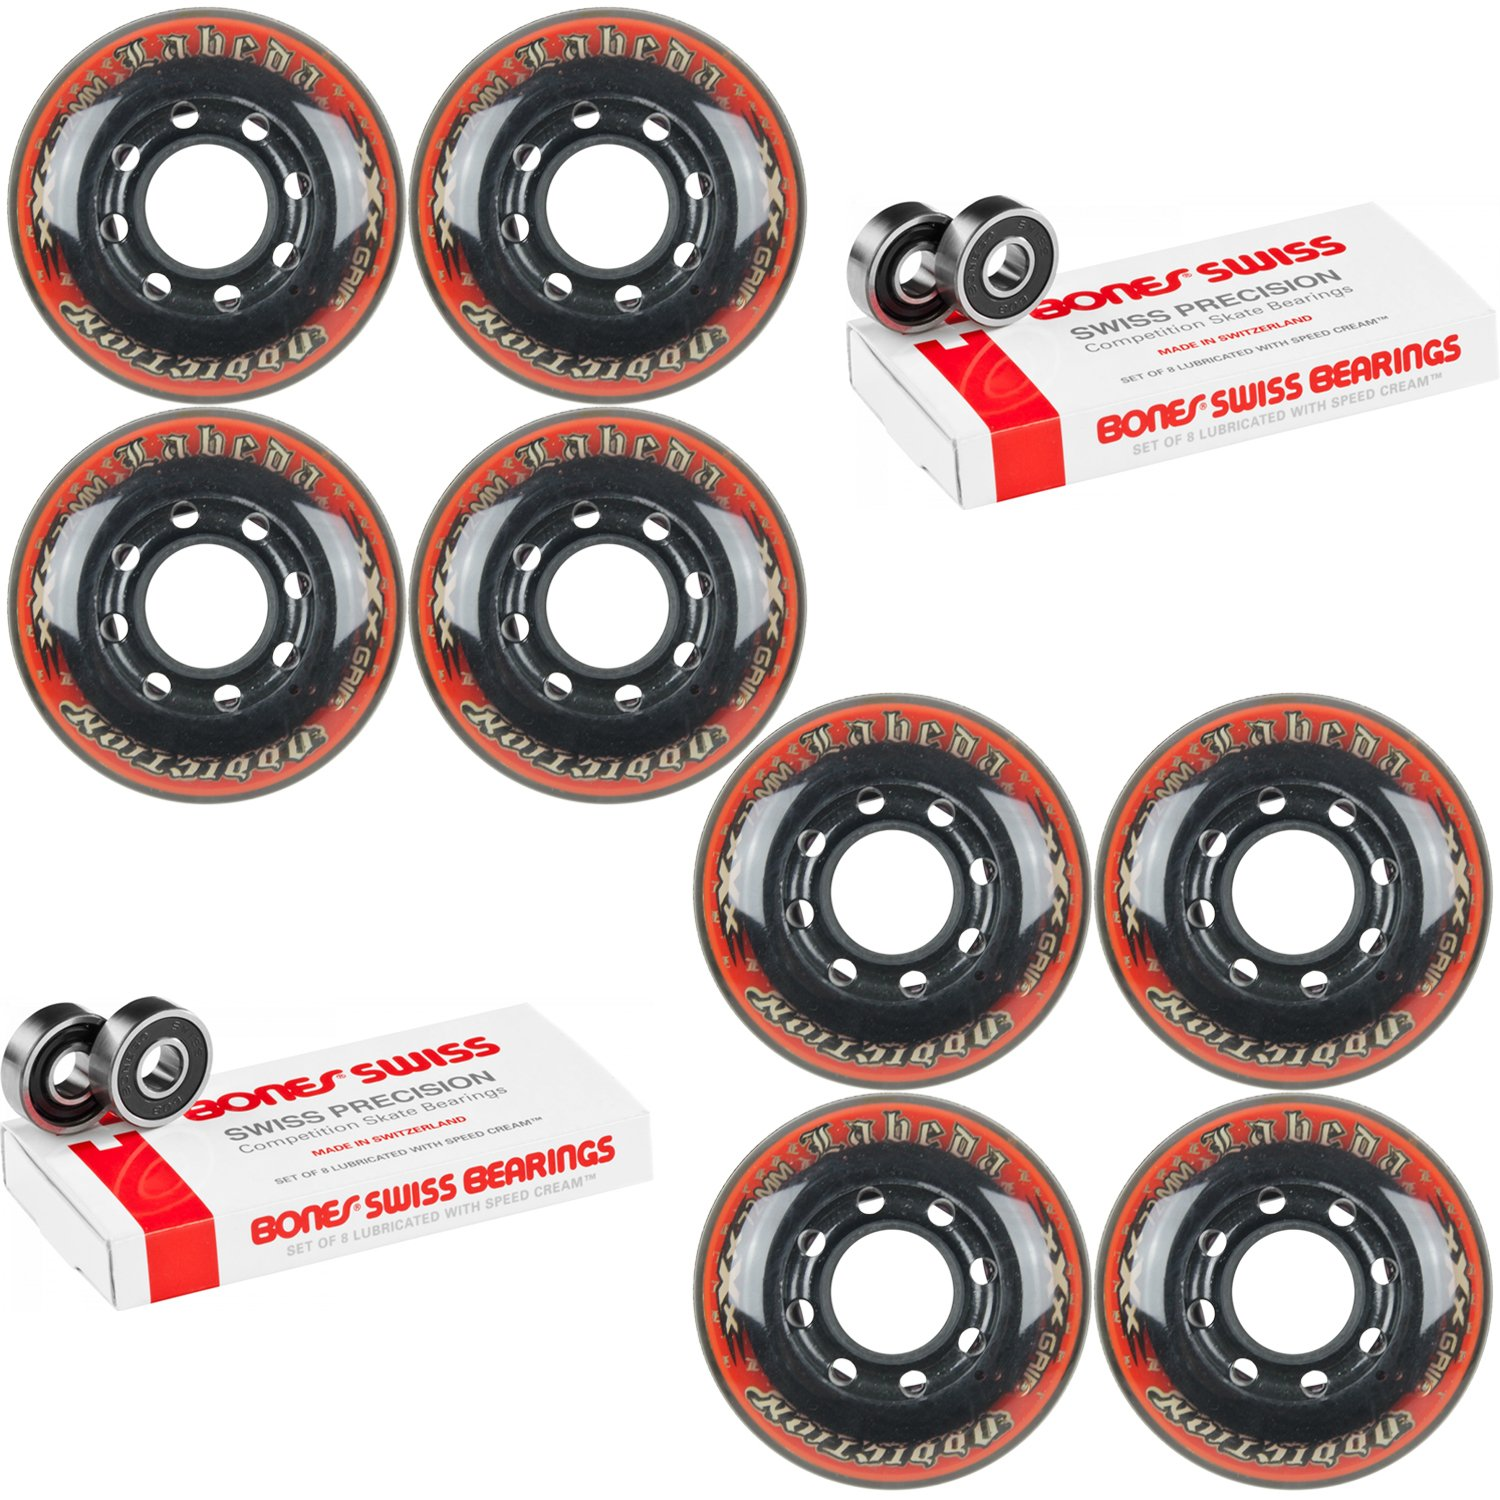 Labeda Addiction Wheels Addiction XXX Grip 72mm Roller Hockey 8-Pack Bones Swiss by Labeda